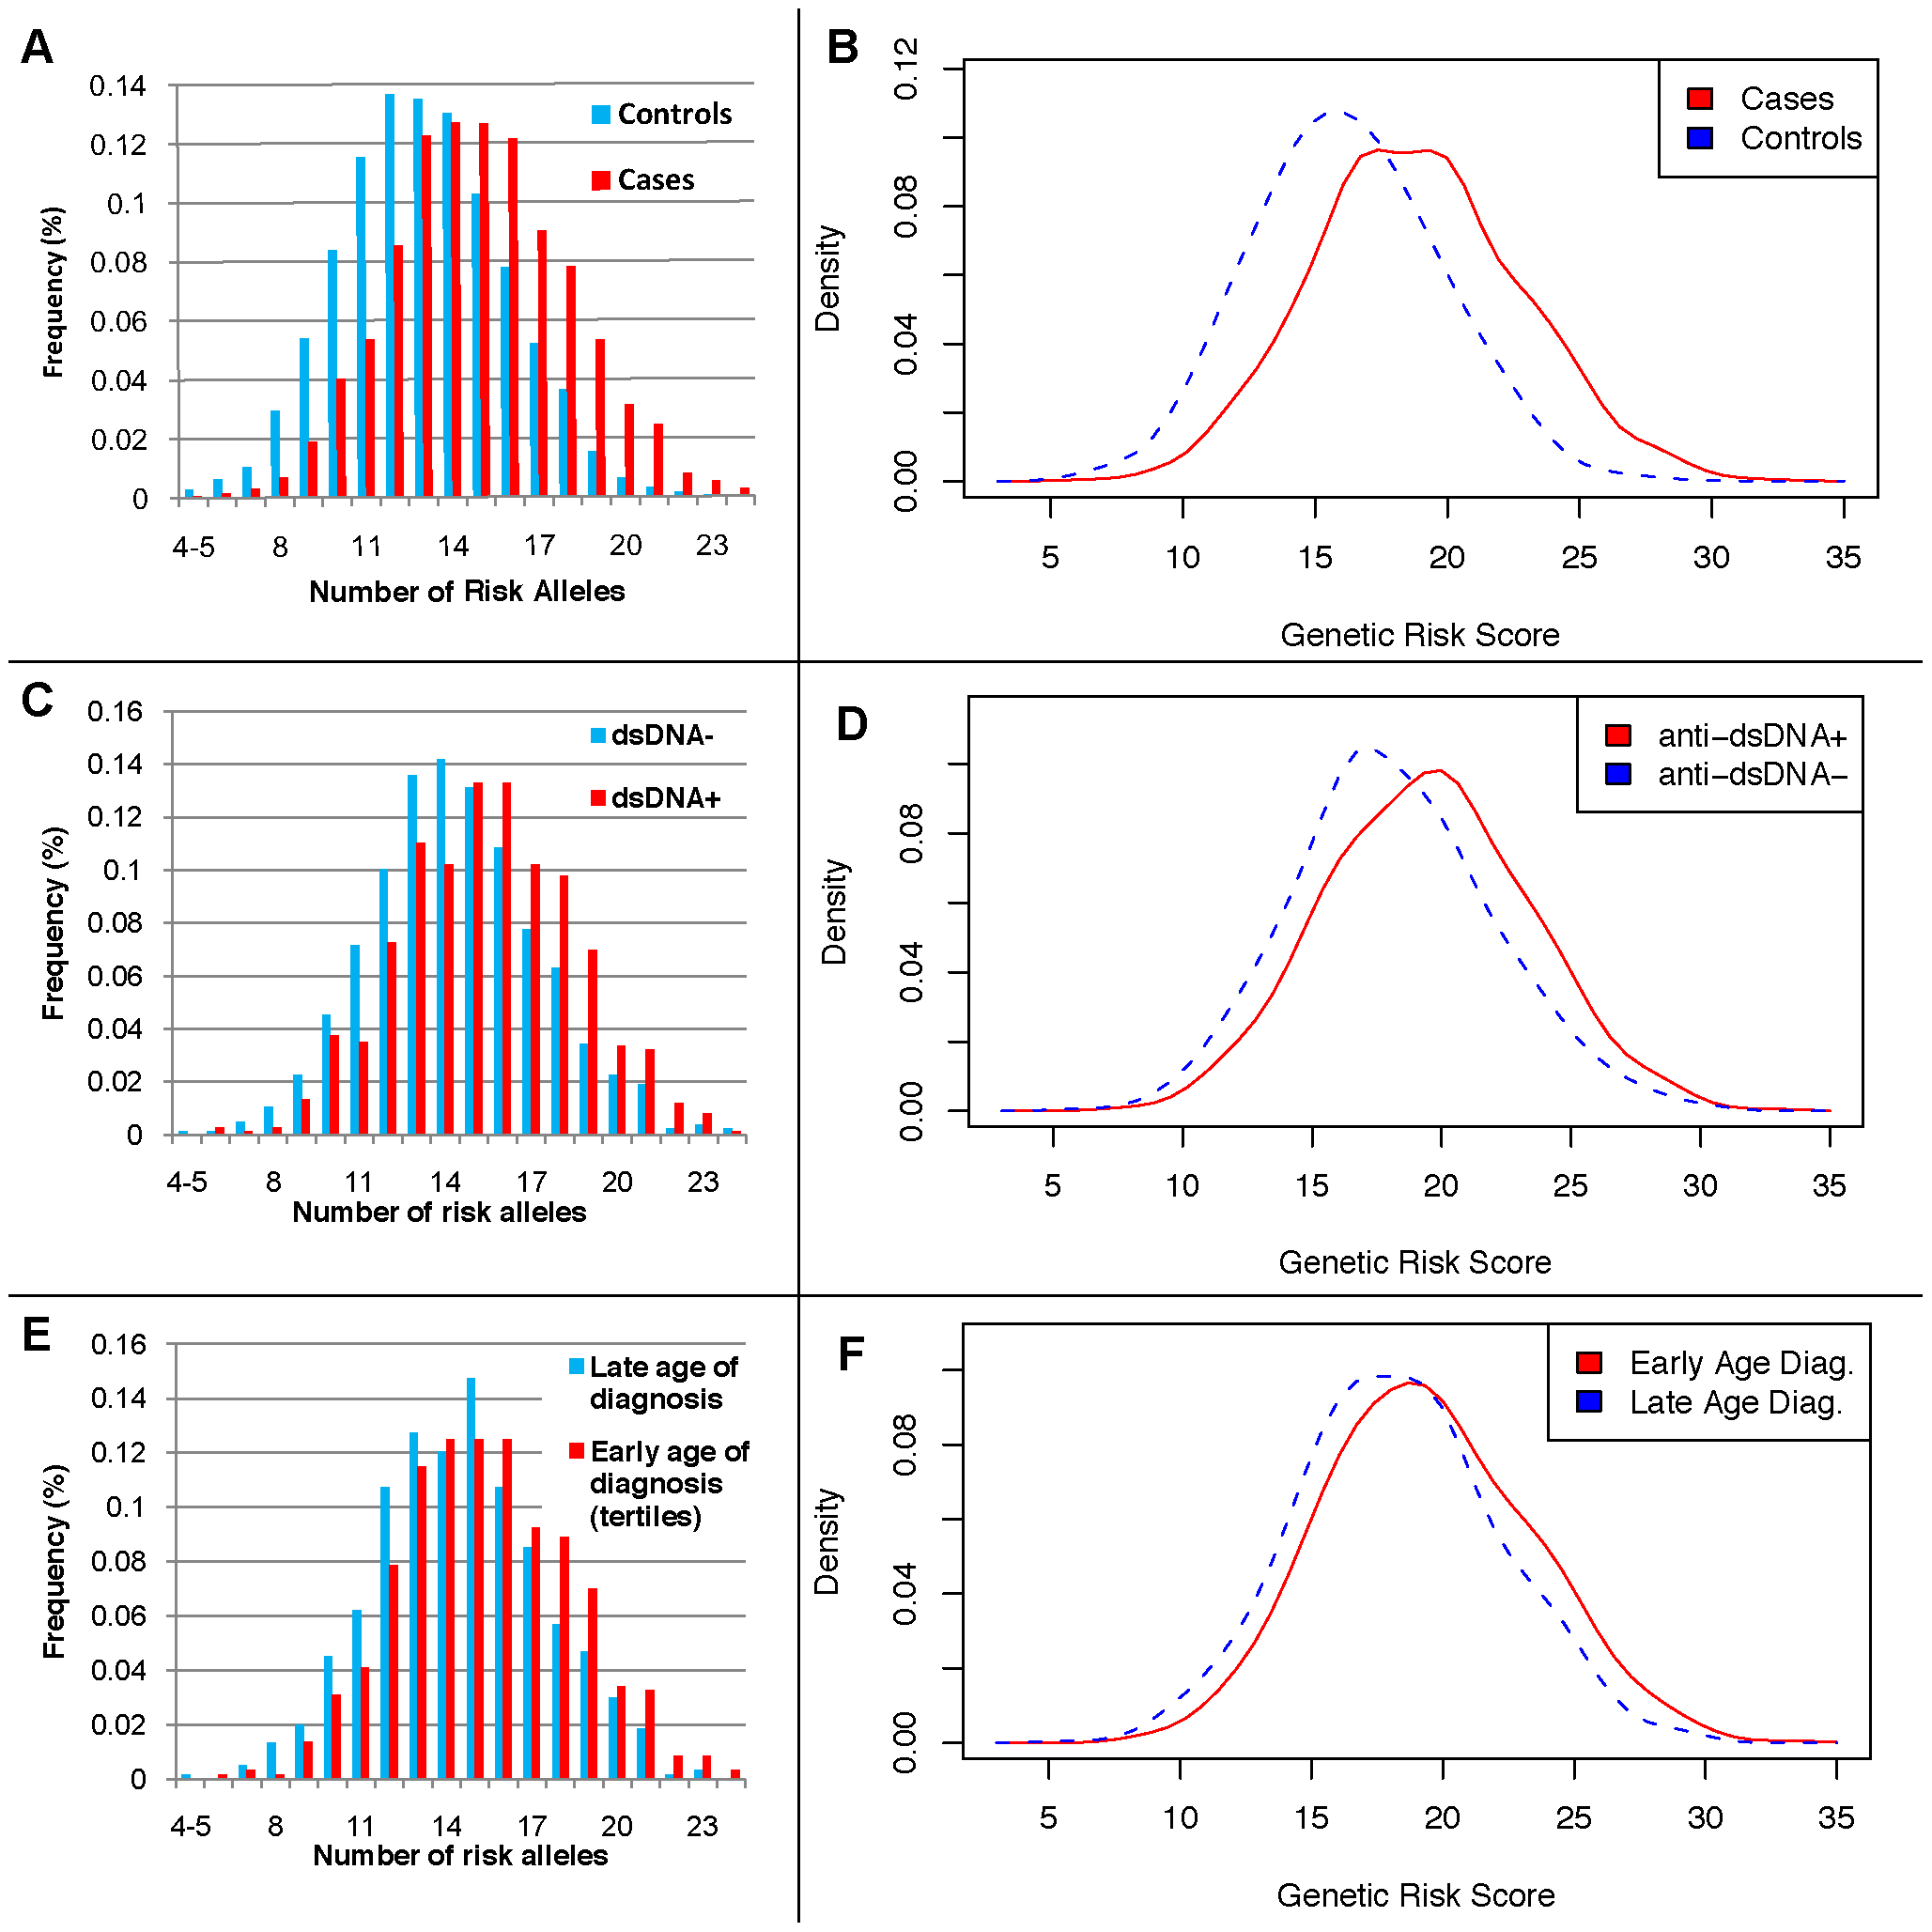 Distributions of the number of risk alleles and genetic risk score (GRS) by disease status, anti-dsDNA status, and age at diagnosis high-low tertiles.